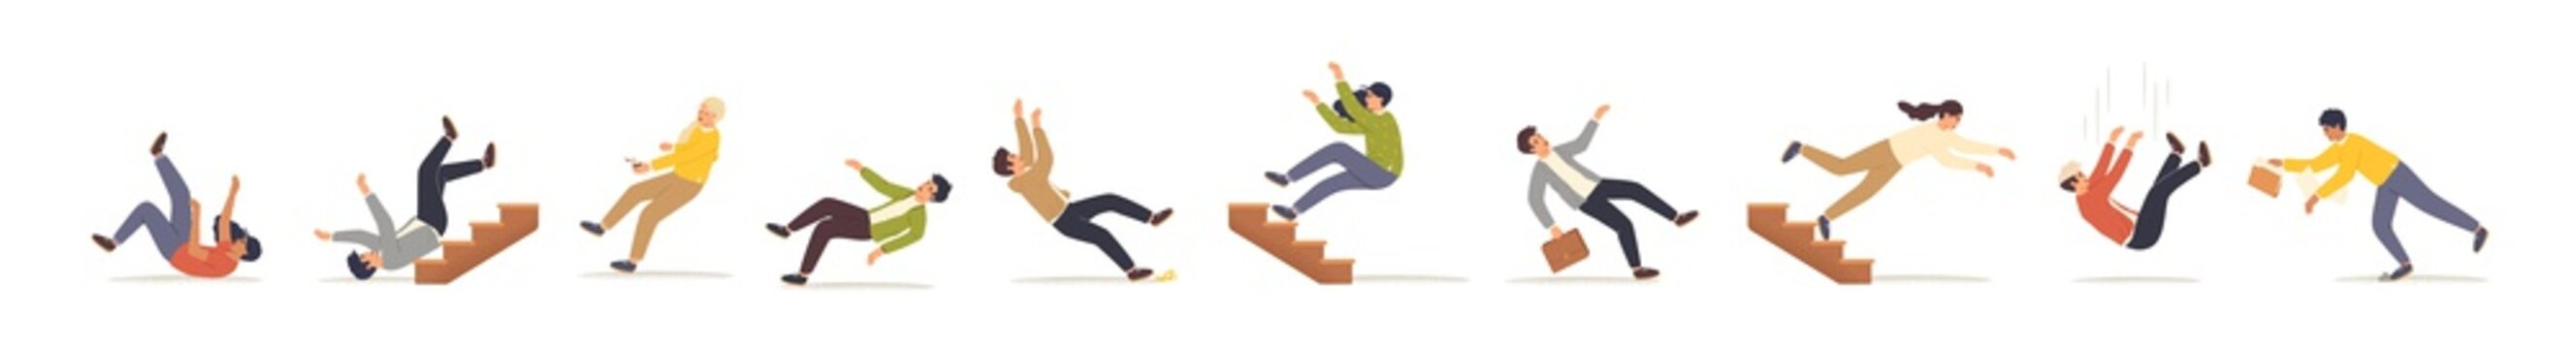 Falling people flat vector illustrations set. Men and women stumbling and falling down stairs cartoon characters. Bad luck, misfortune, fiasco. Business failure, company crash concept.